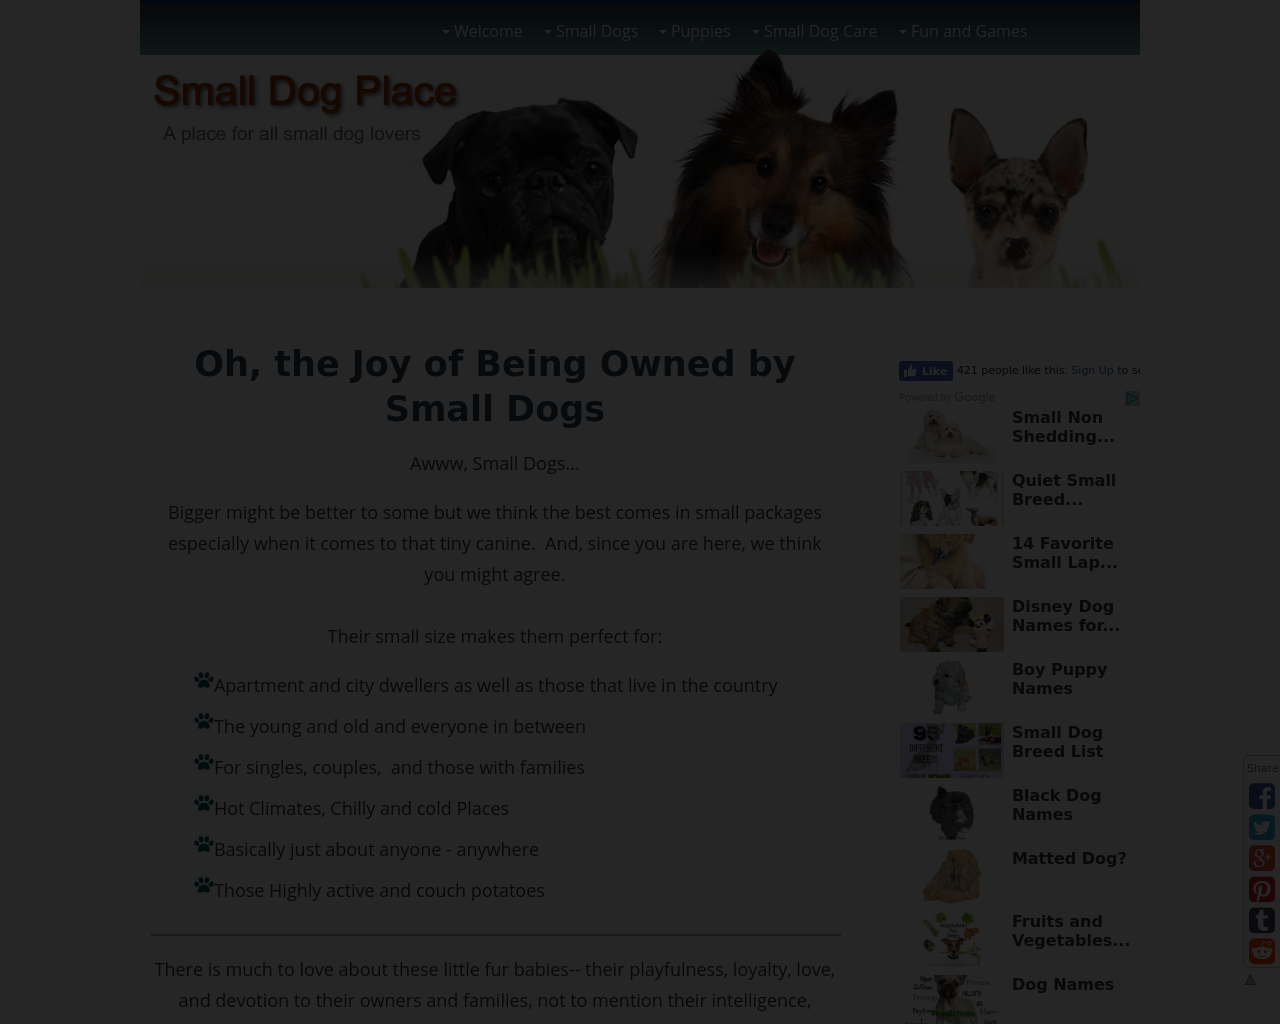 Small-Dog-Place-Advertising-Reviews-Pricing